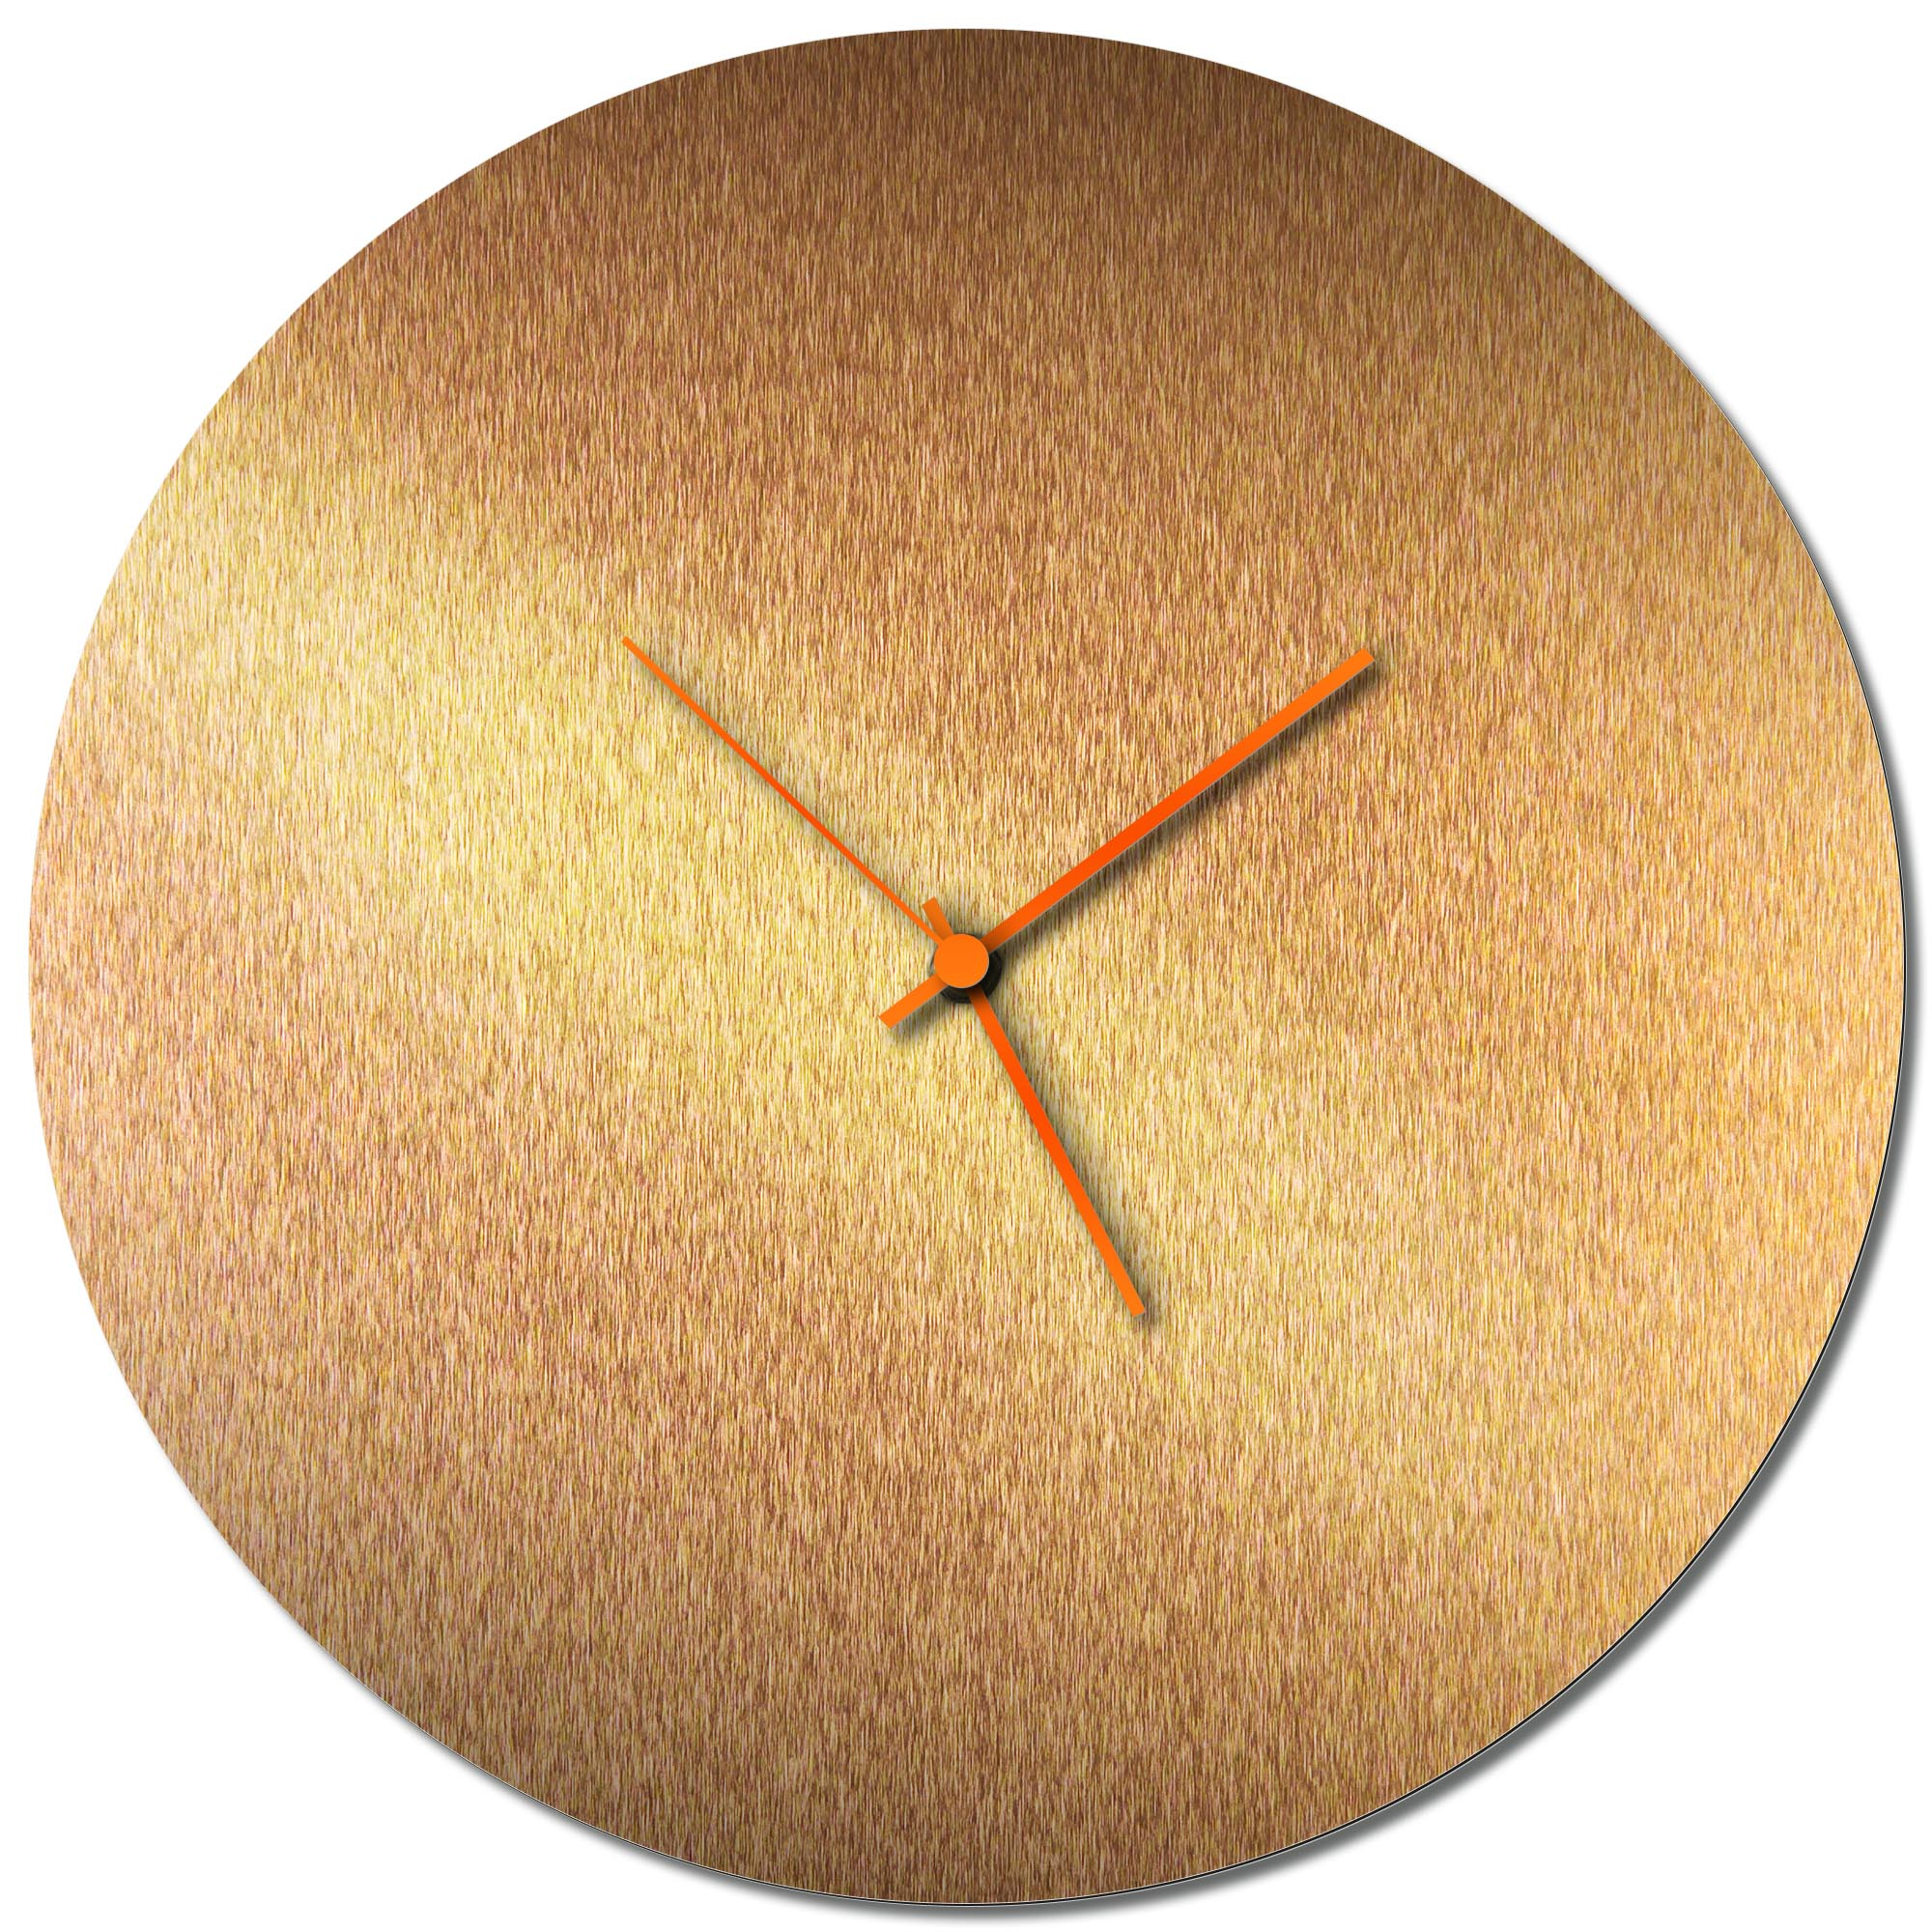 Adam Schwoeppe 'Bronzesmith Circle Clock Large Orange' Midcentury Modern Style Wall Clock